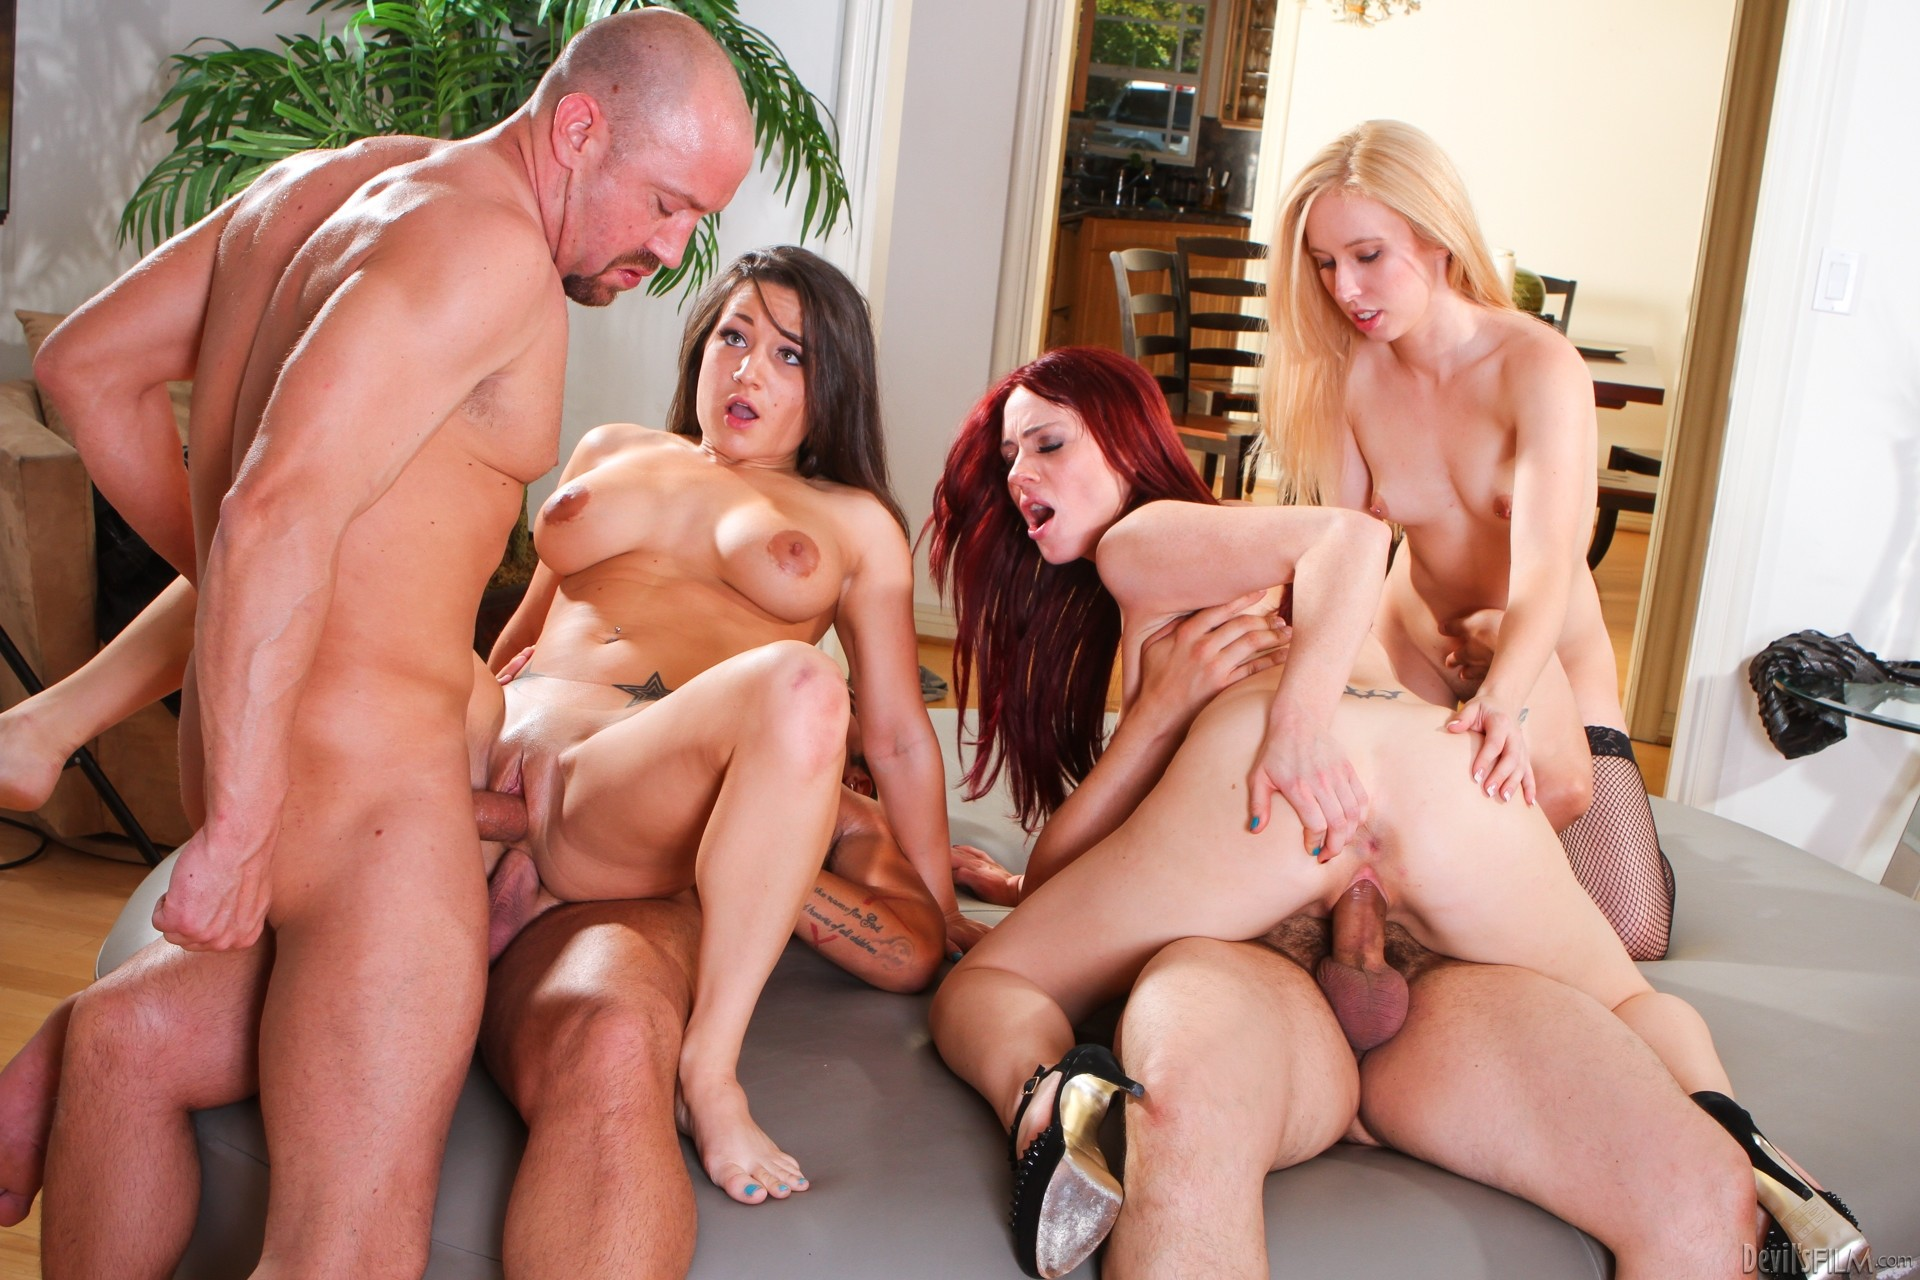 Explicit group fornication with wild hotties and studs sex photo